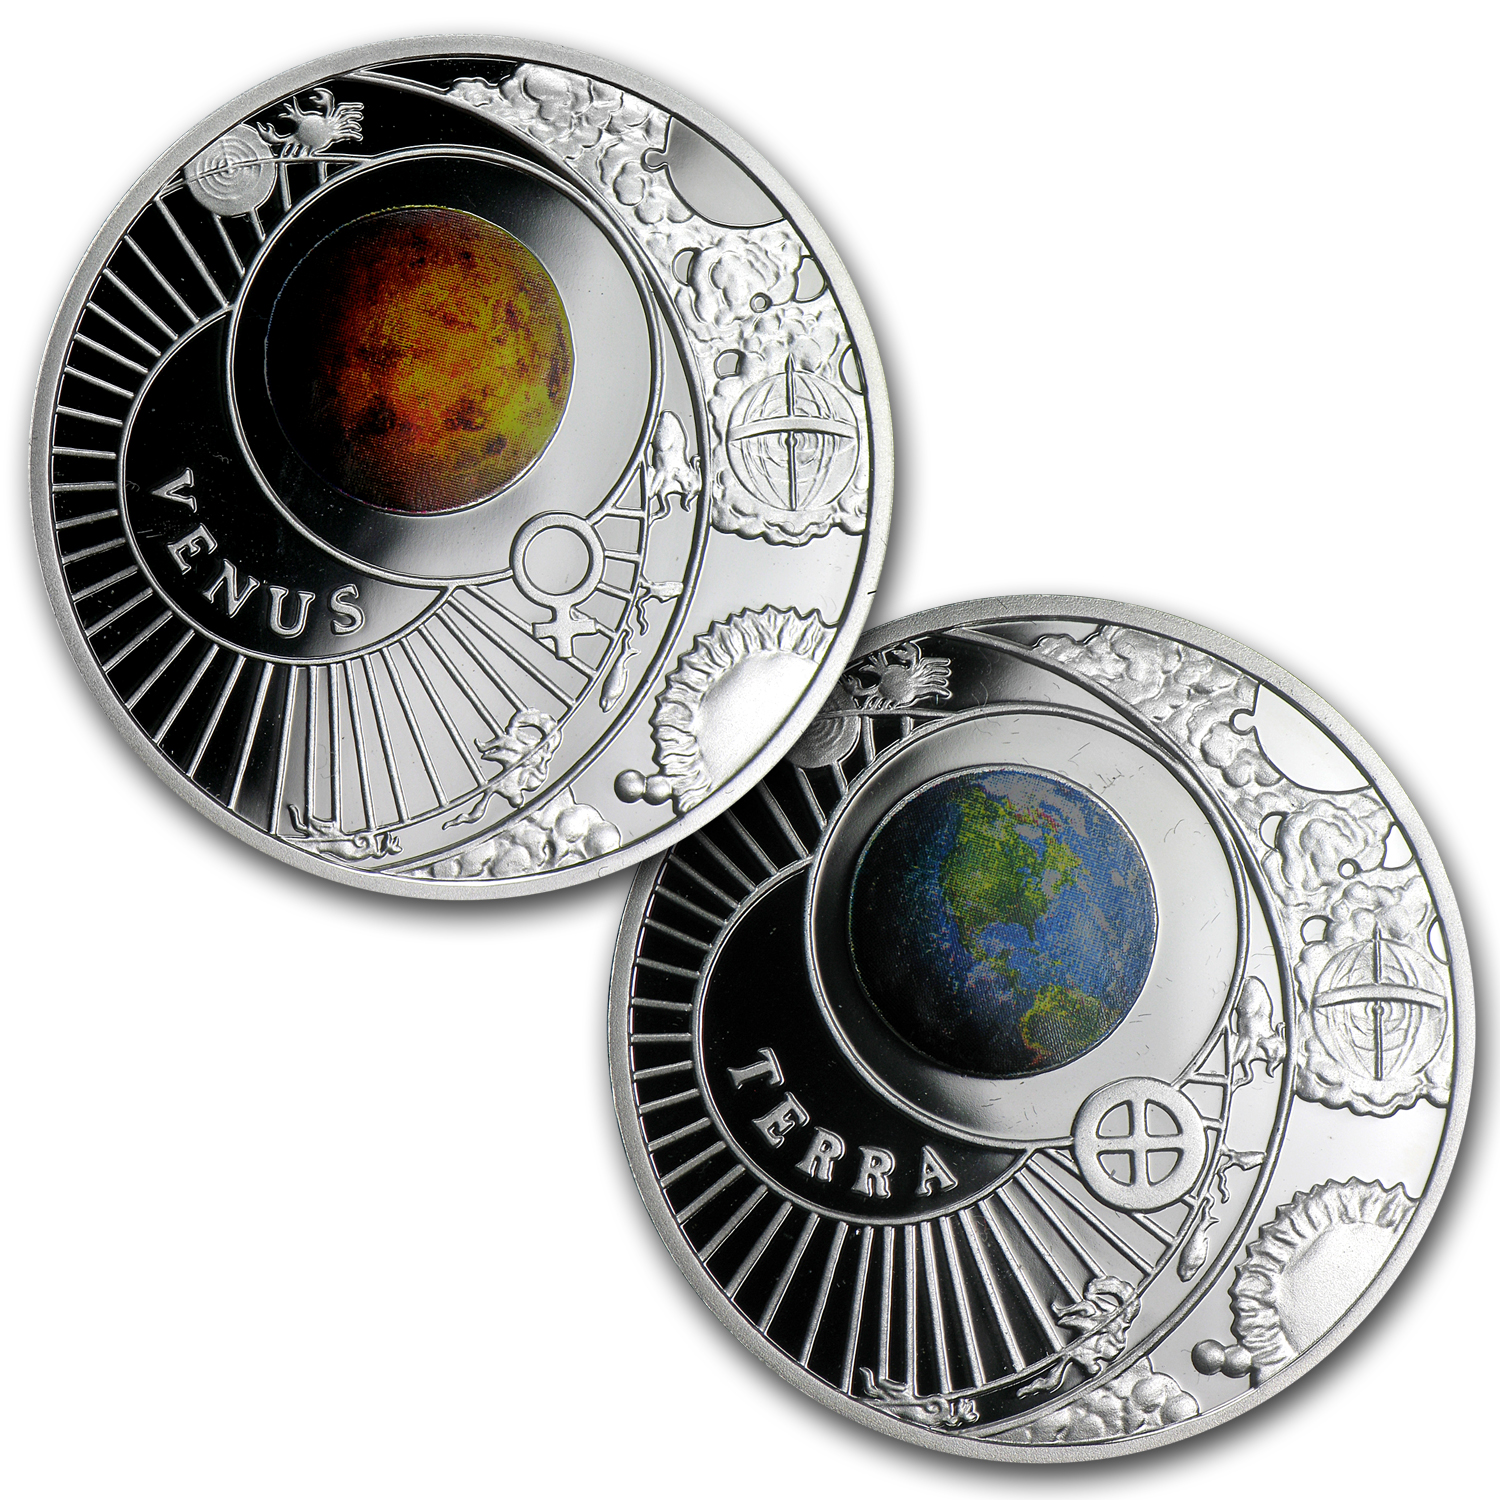 Belarus 2012 The Solar System Proof Silver - 9-coin Box Set